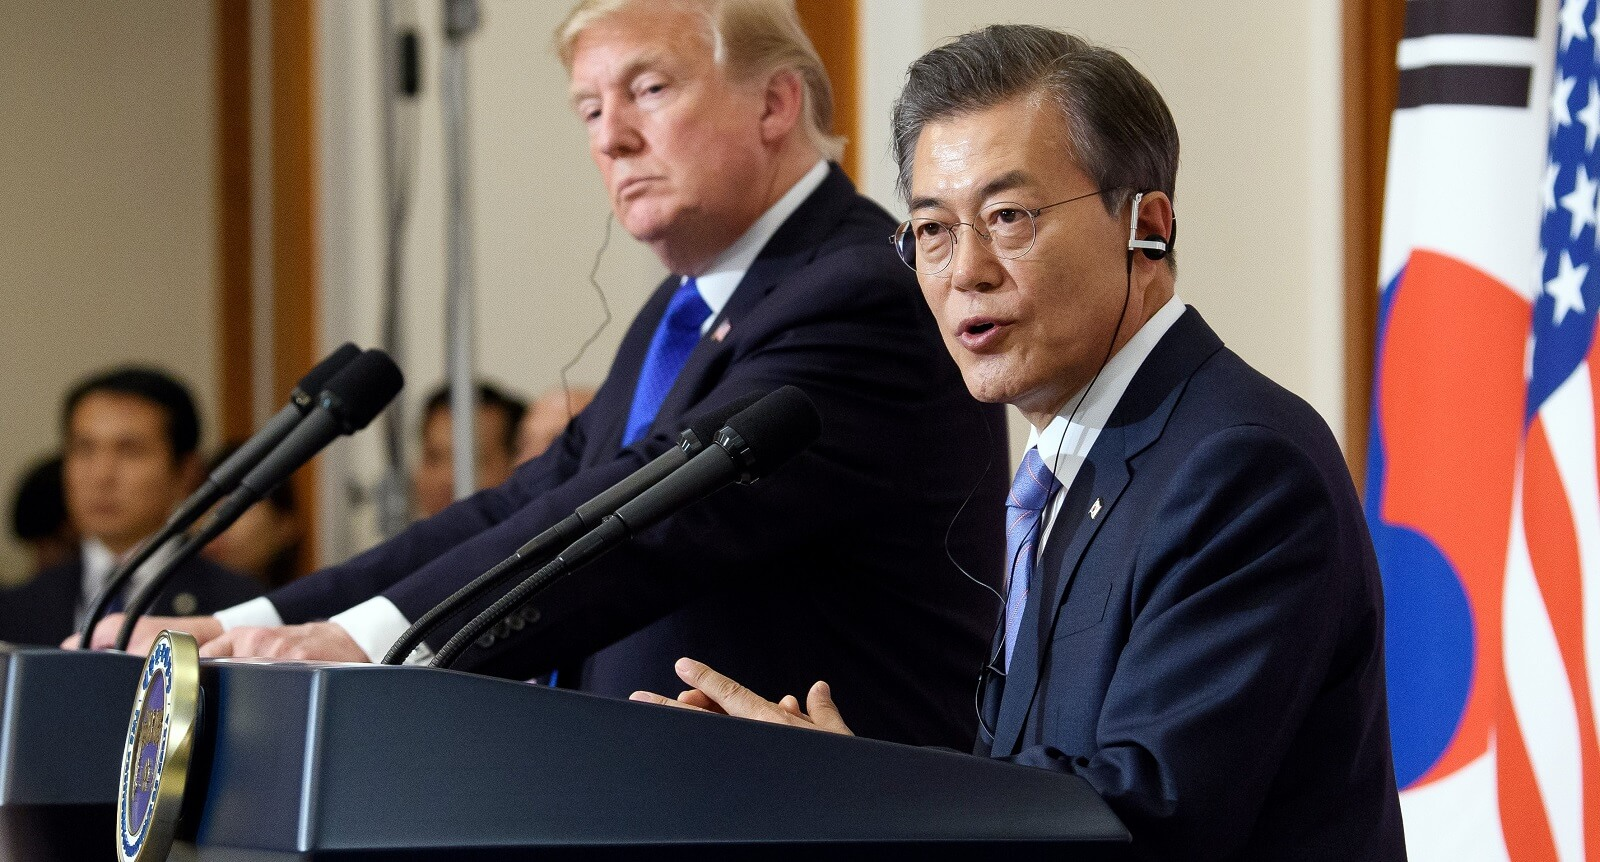 US President Donald Trump and South Korean President Moon Jae-in (Photo: Republic of Korea/Flickr)